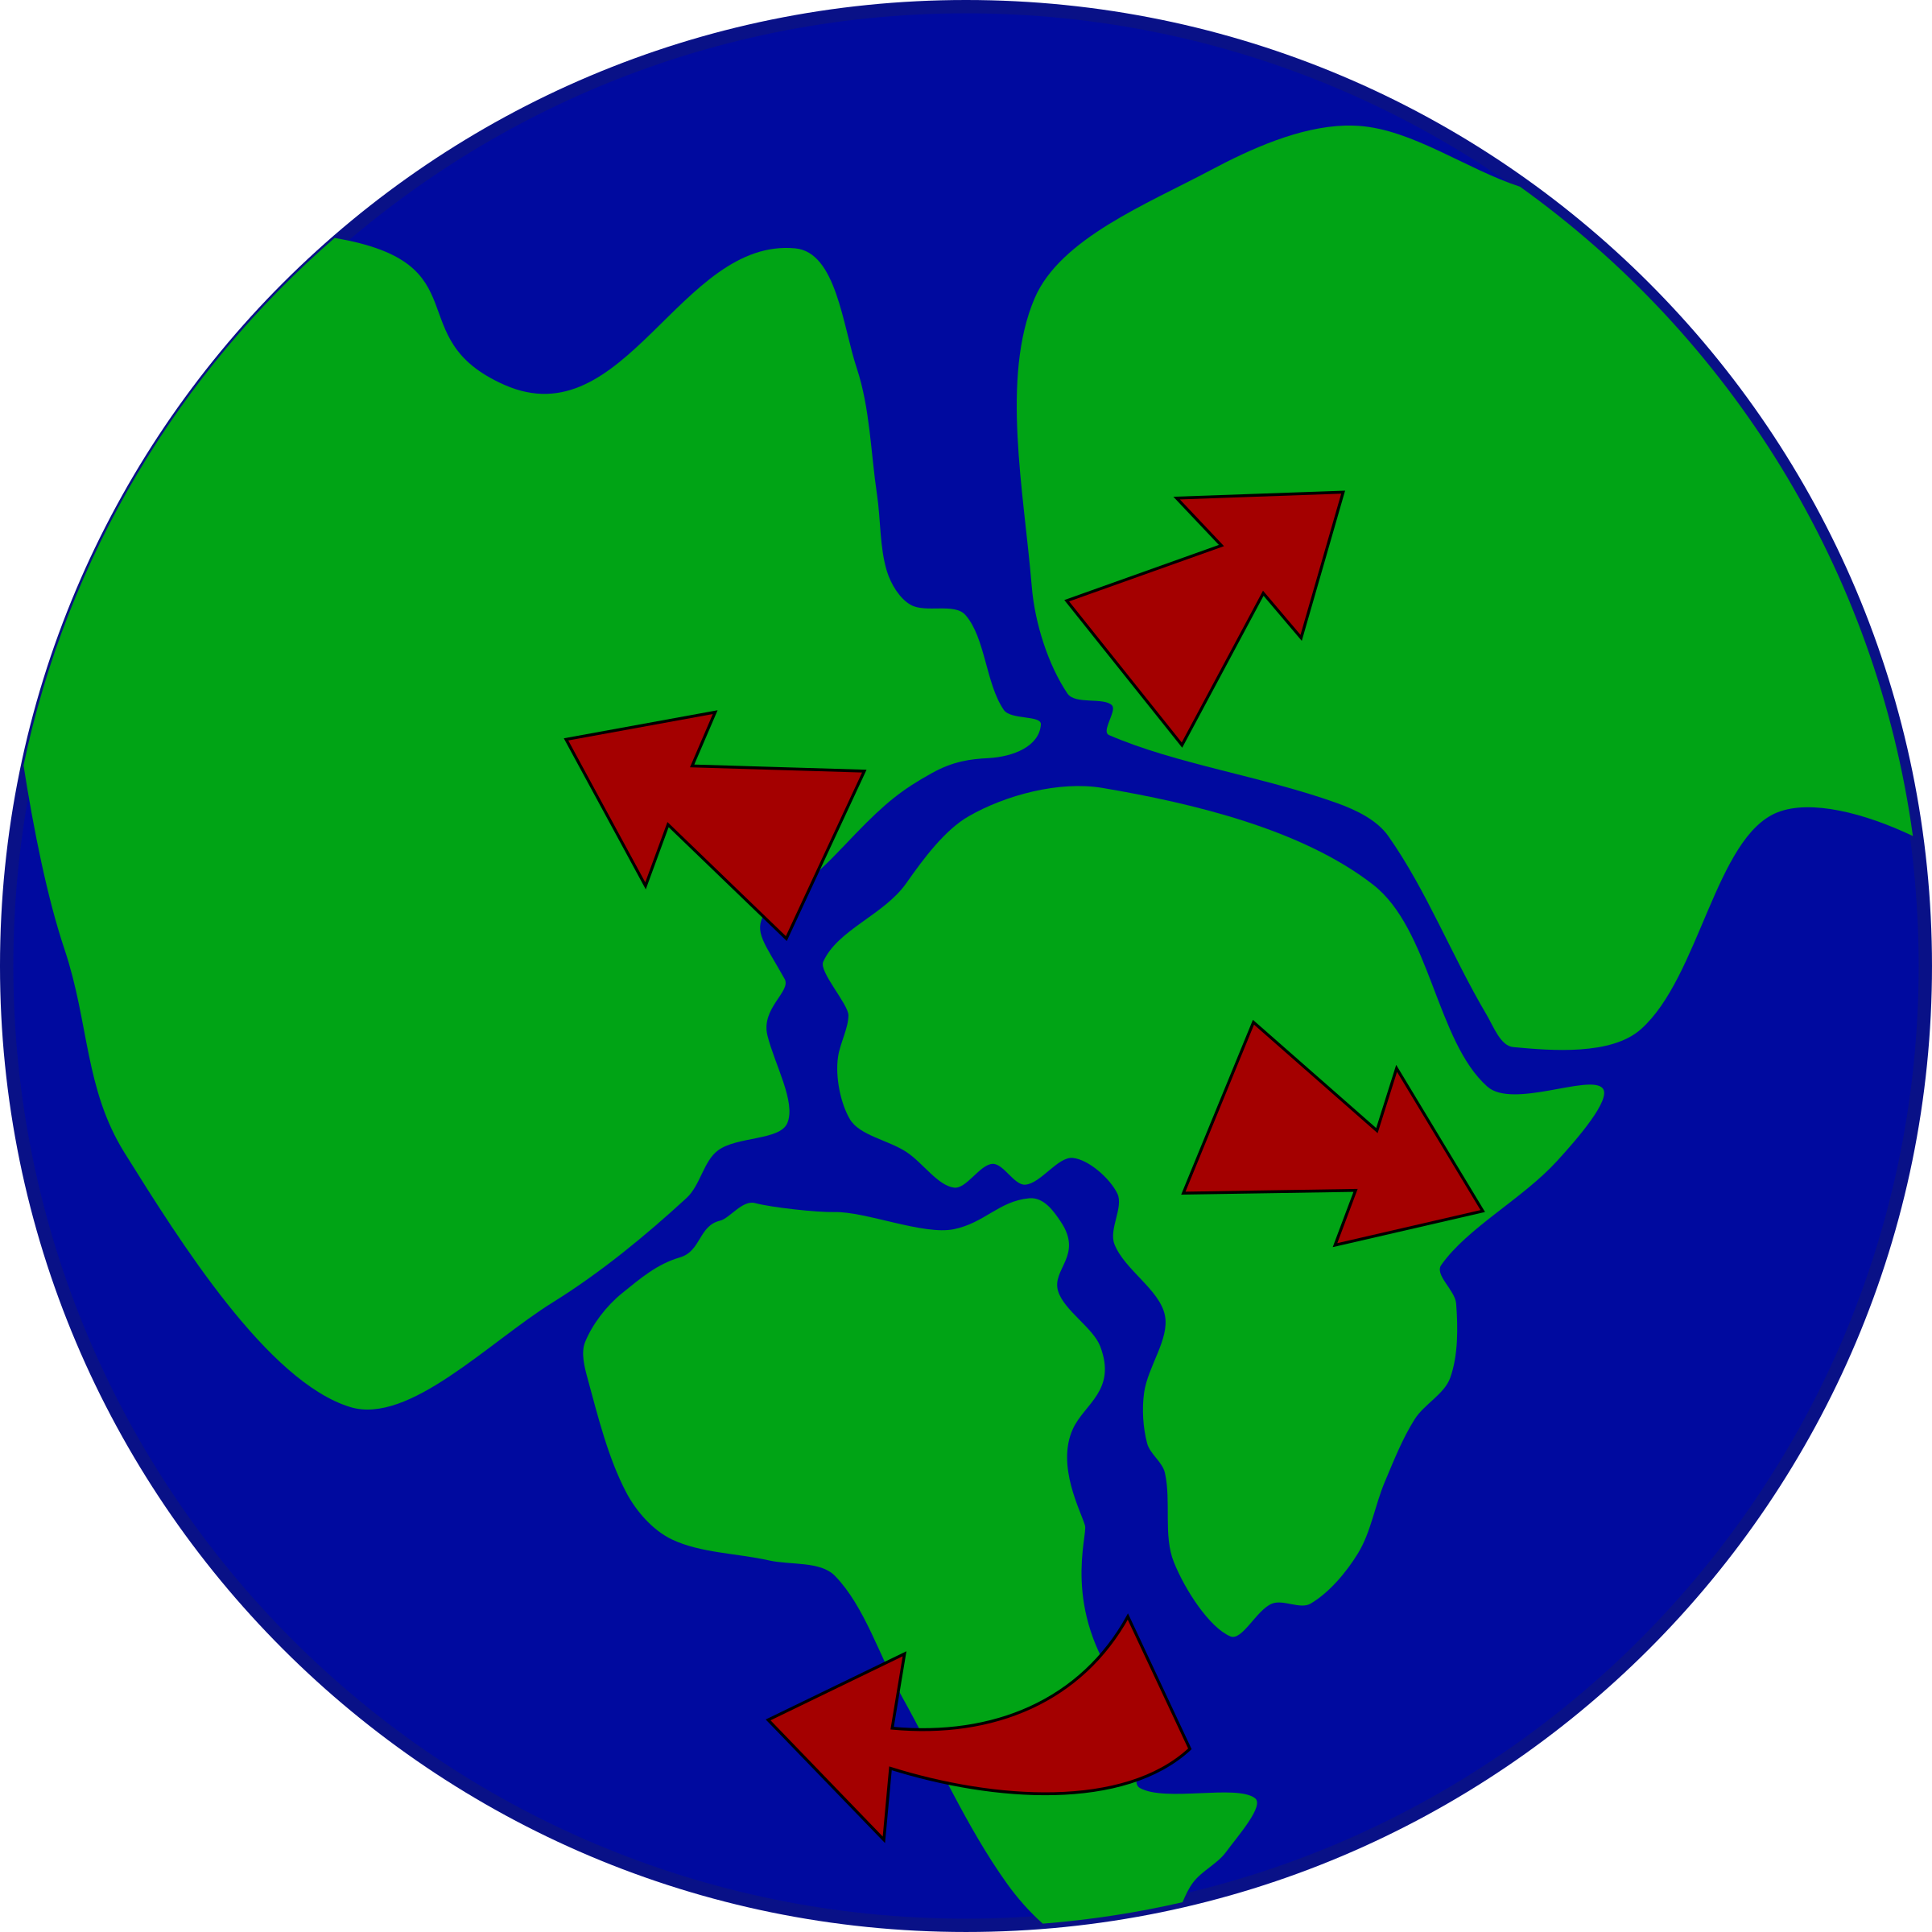 Clipart ocean flood. Earth with continents breaking